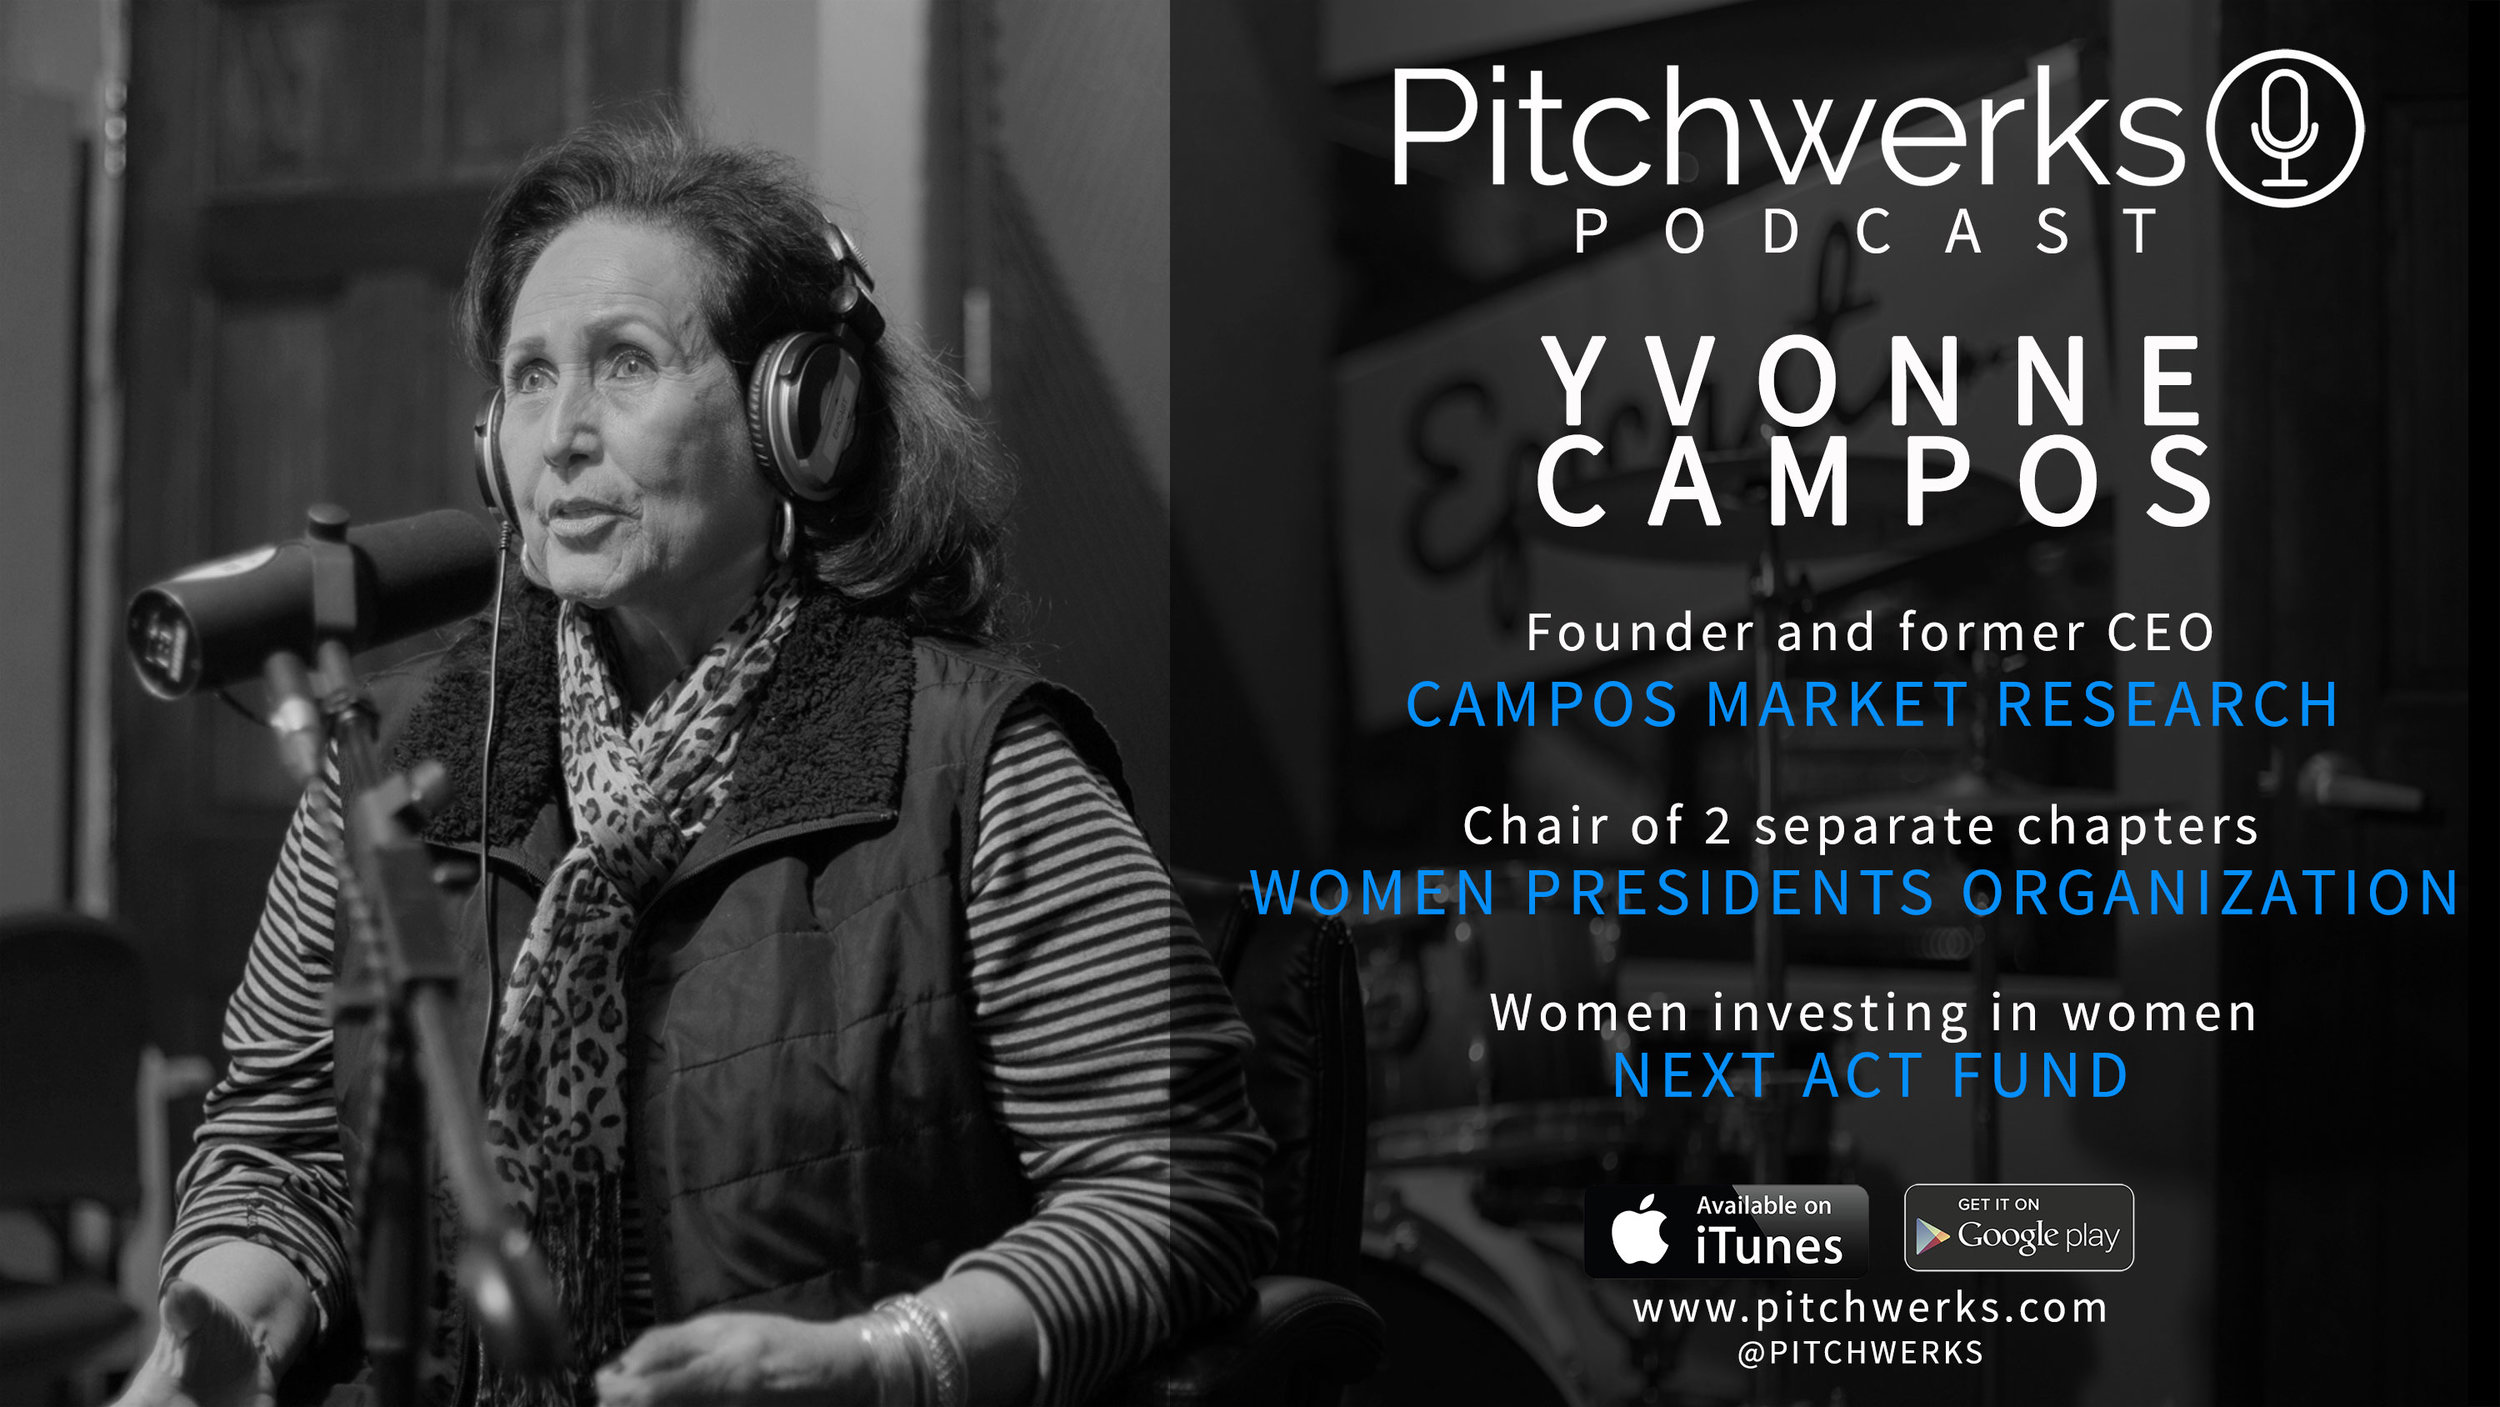 Yvonne Campos recording with Pitchwerks